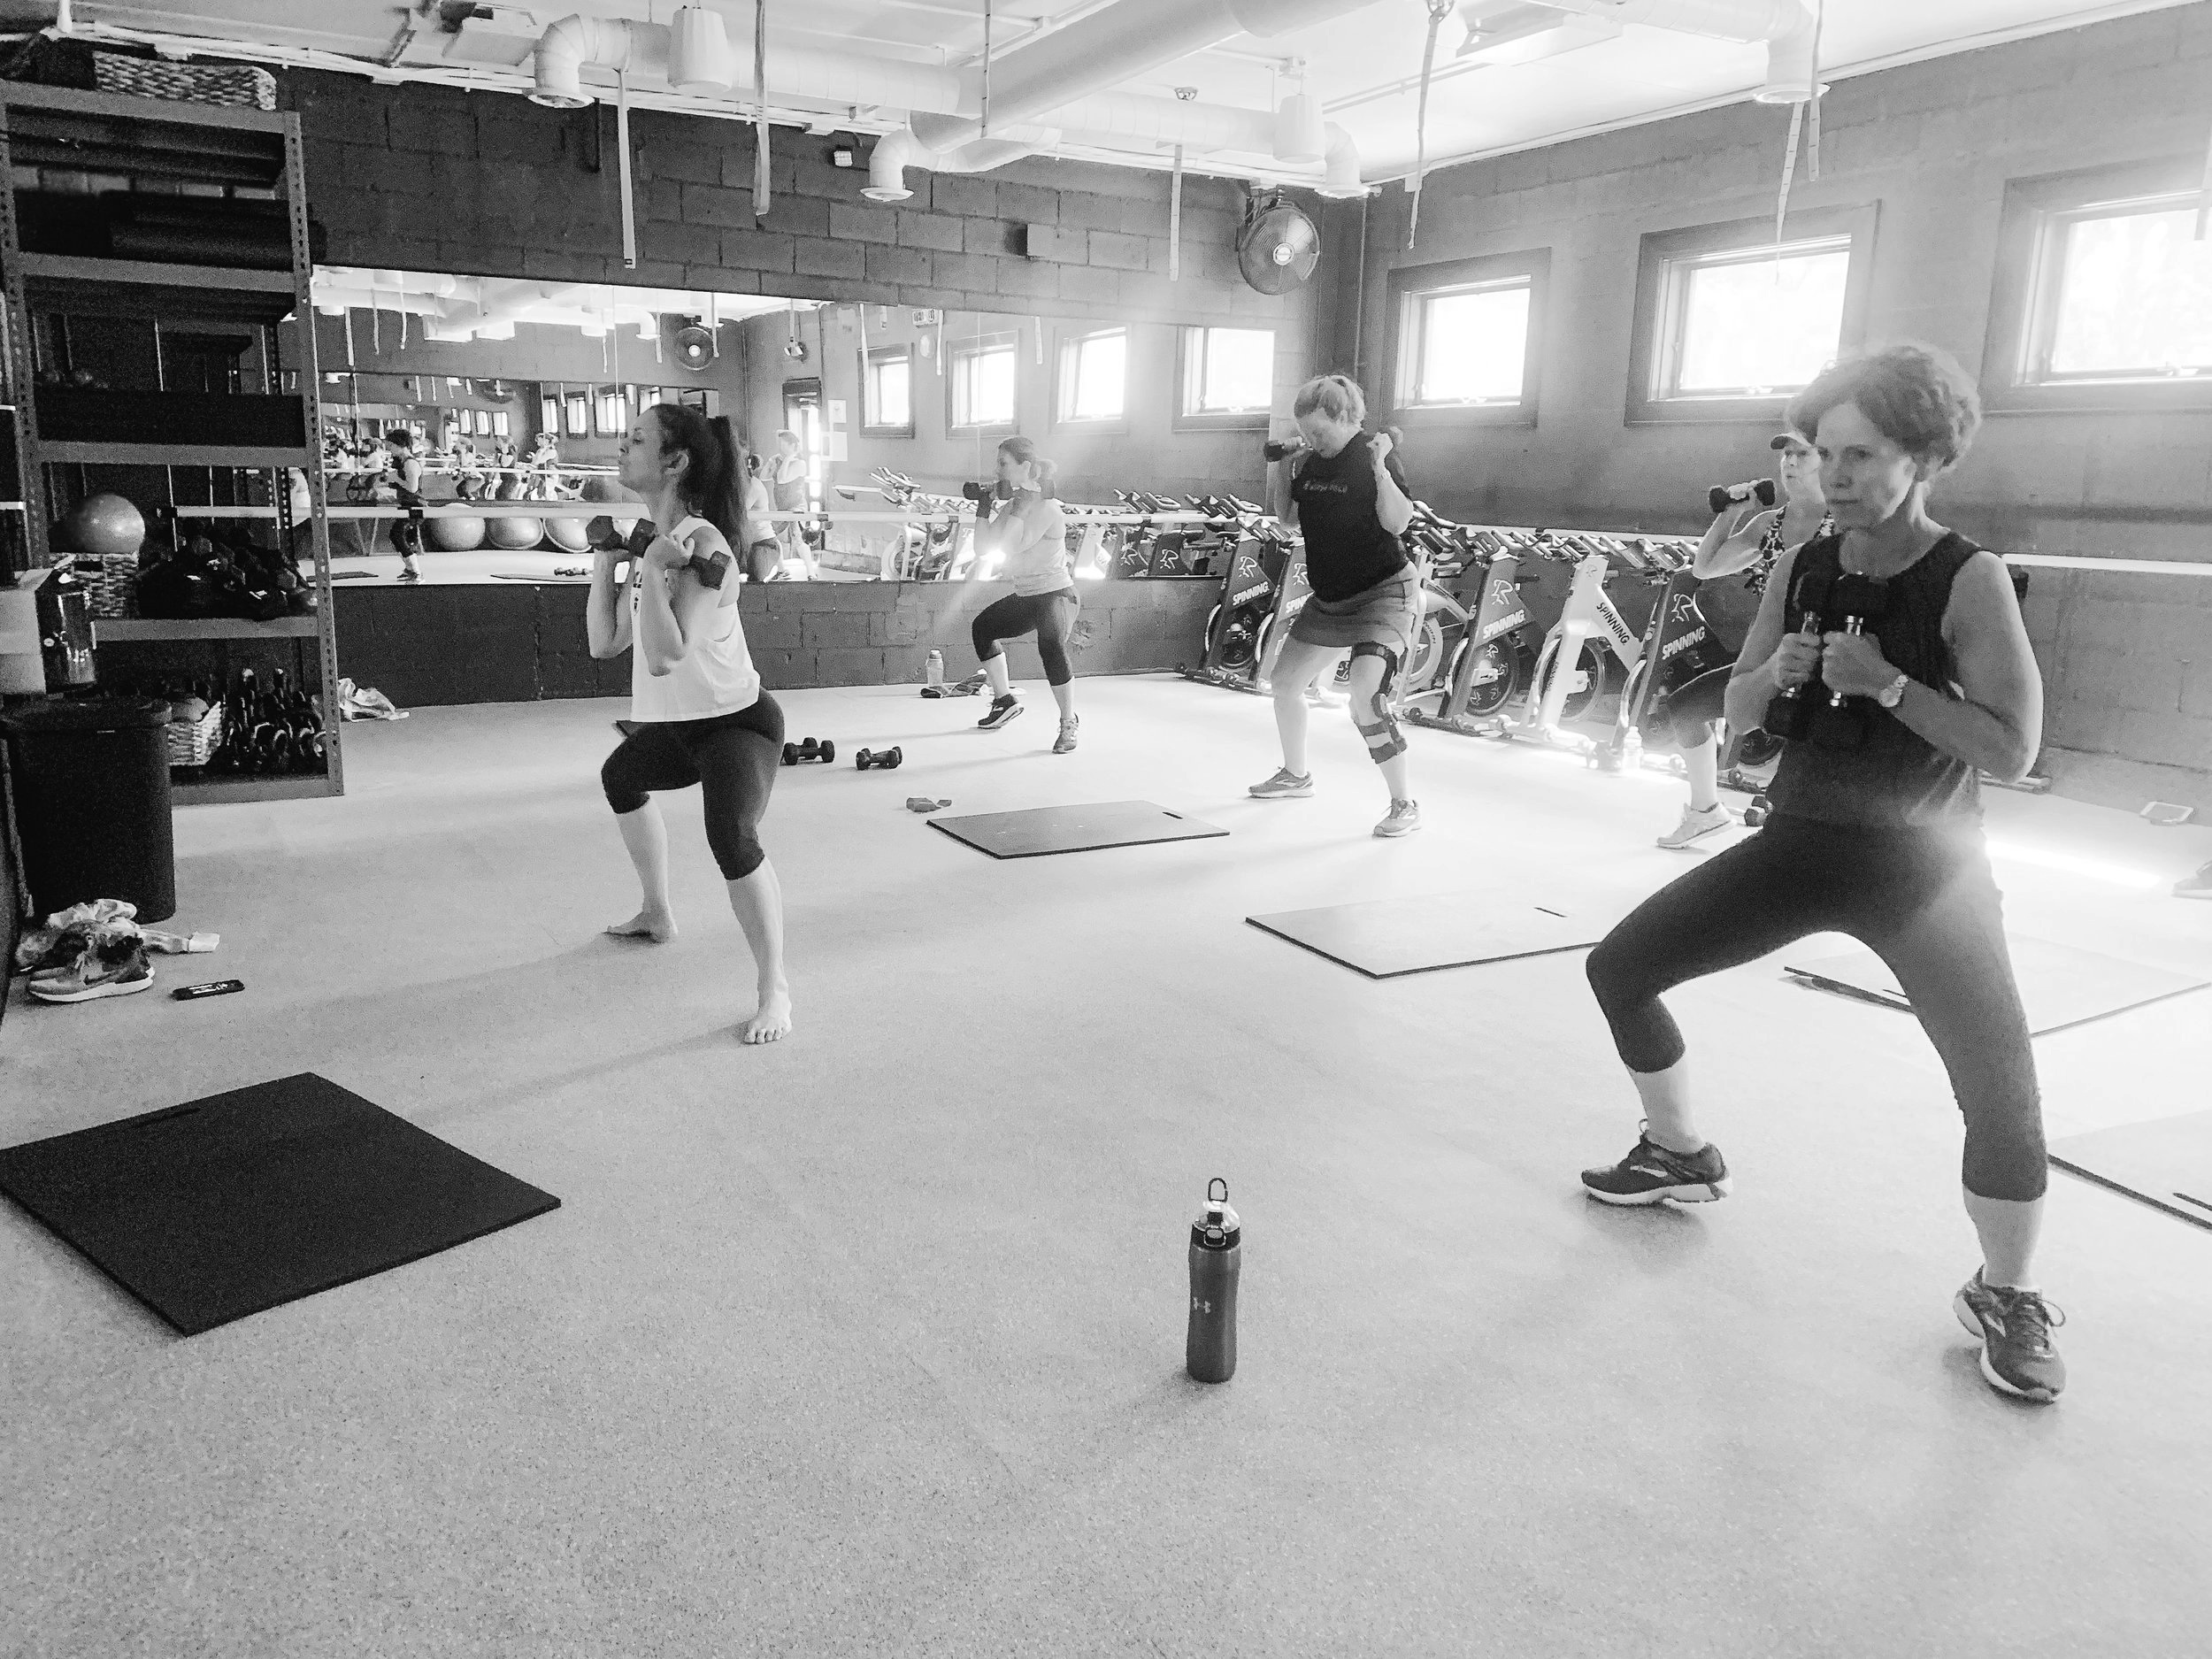 HIIT IT - HIIT. High Intensity Interval Training class with all our favorite fitness tools. Push yourself for burst of power, strength and cardio!